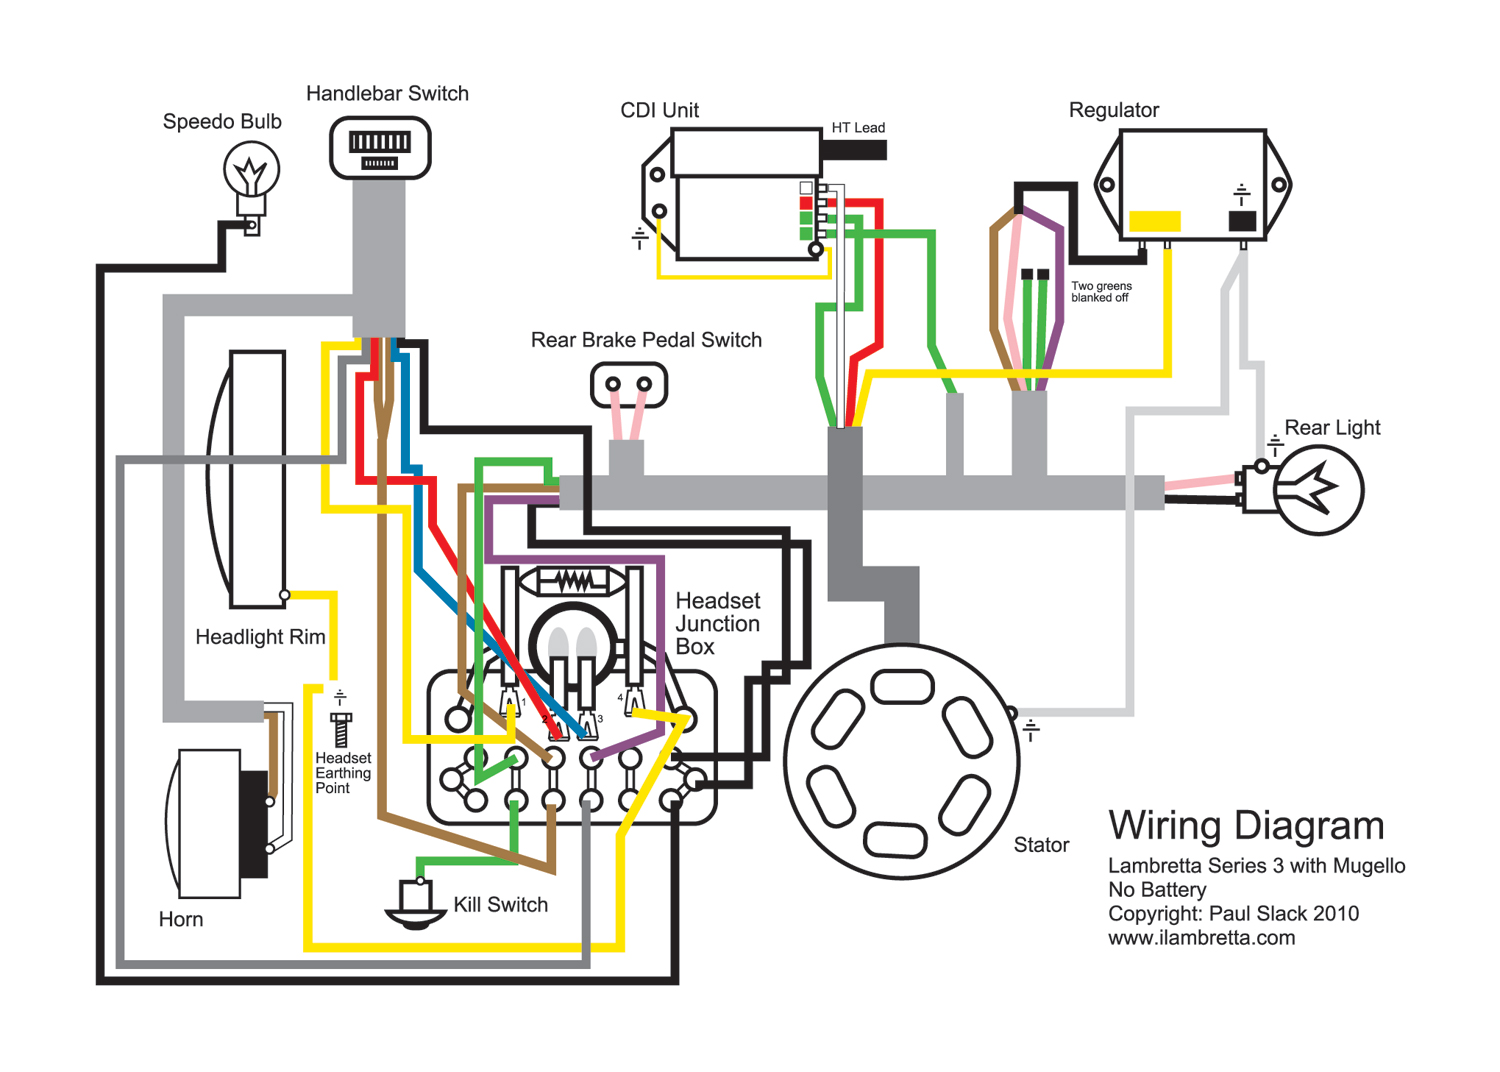 Lambretta Restoration Wiring Diagram For Mugello 12 Volt Upgrade Images Of What Is The A